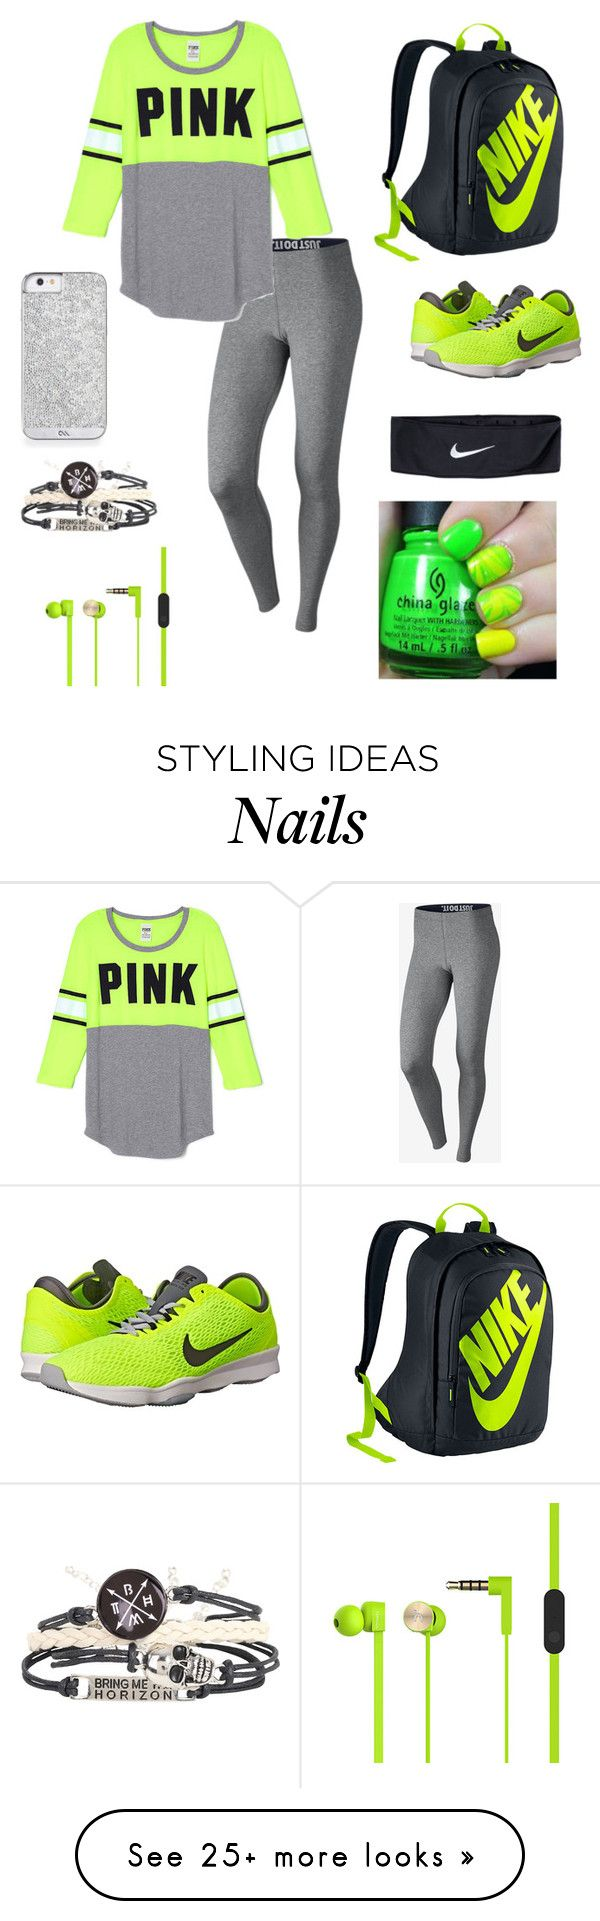 """nikes and pink"" by fashionishaa on Polyvore featuring NIKE, women's clothing, women's fashion, women, female, woman, misses and juniors"